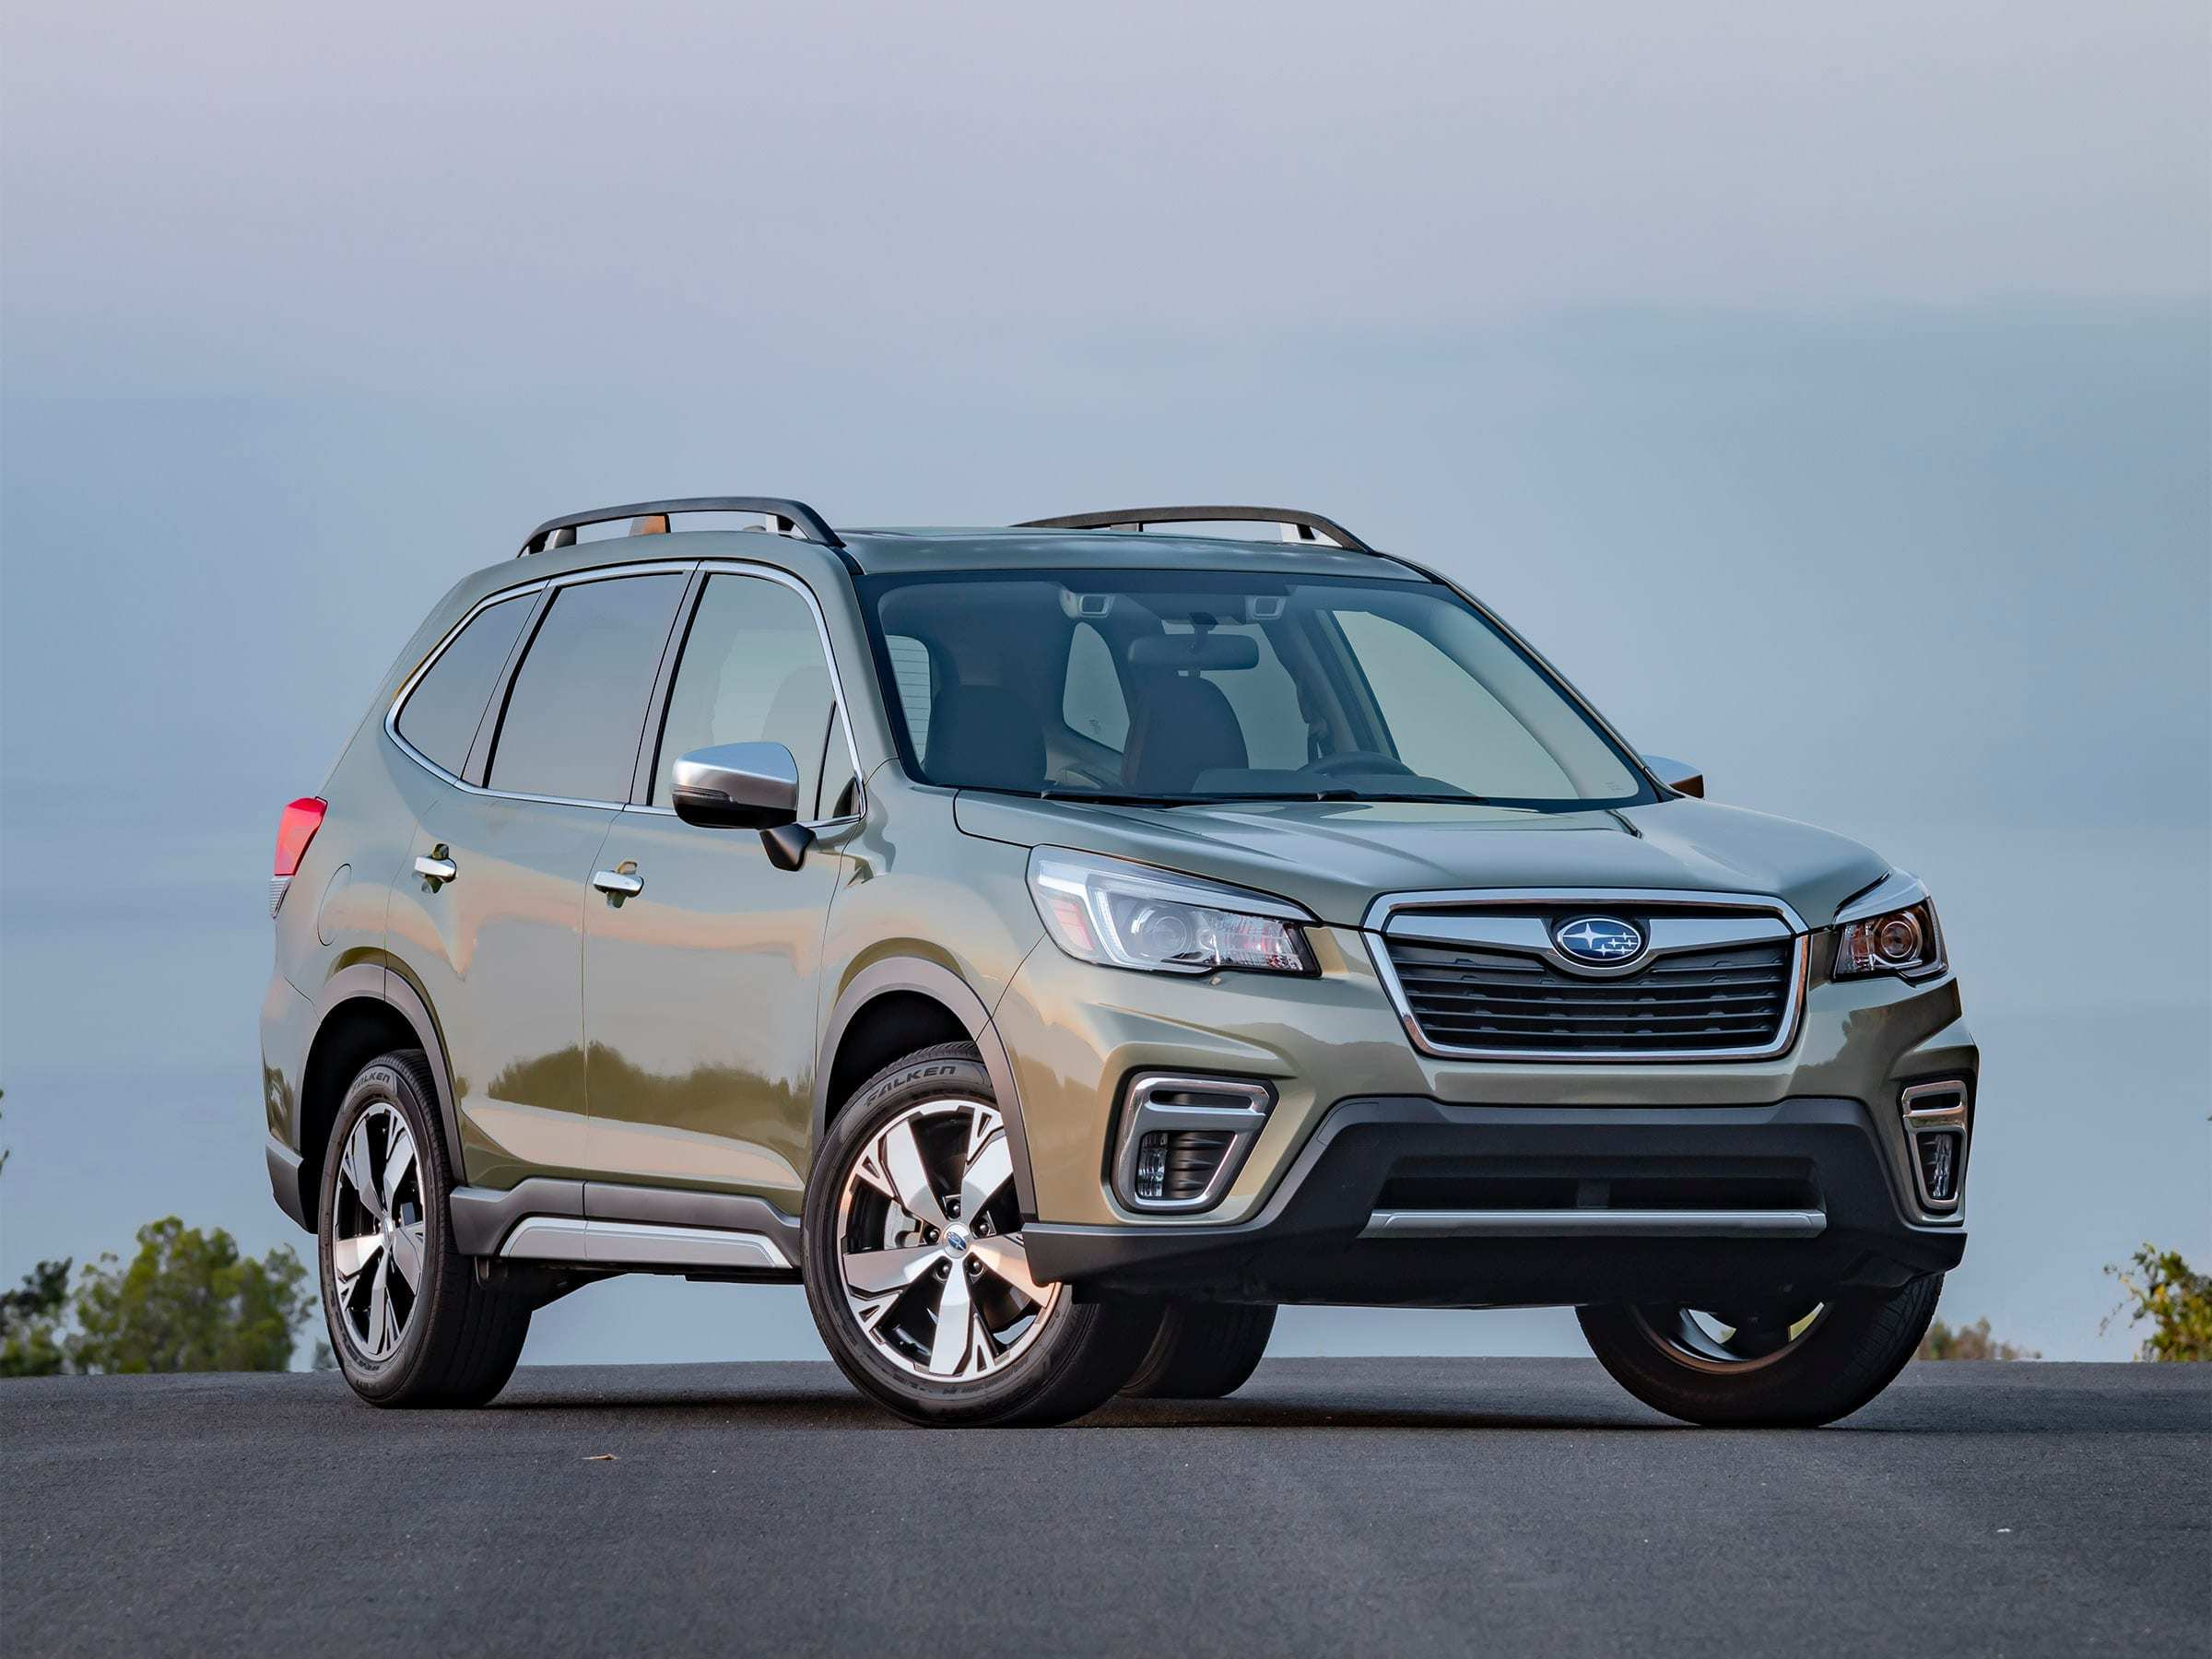 80 New Subaru Forester 2019 News Redesign